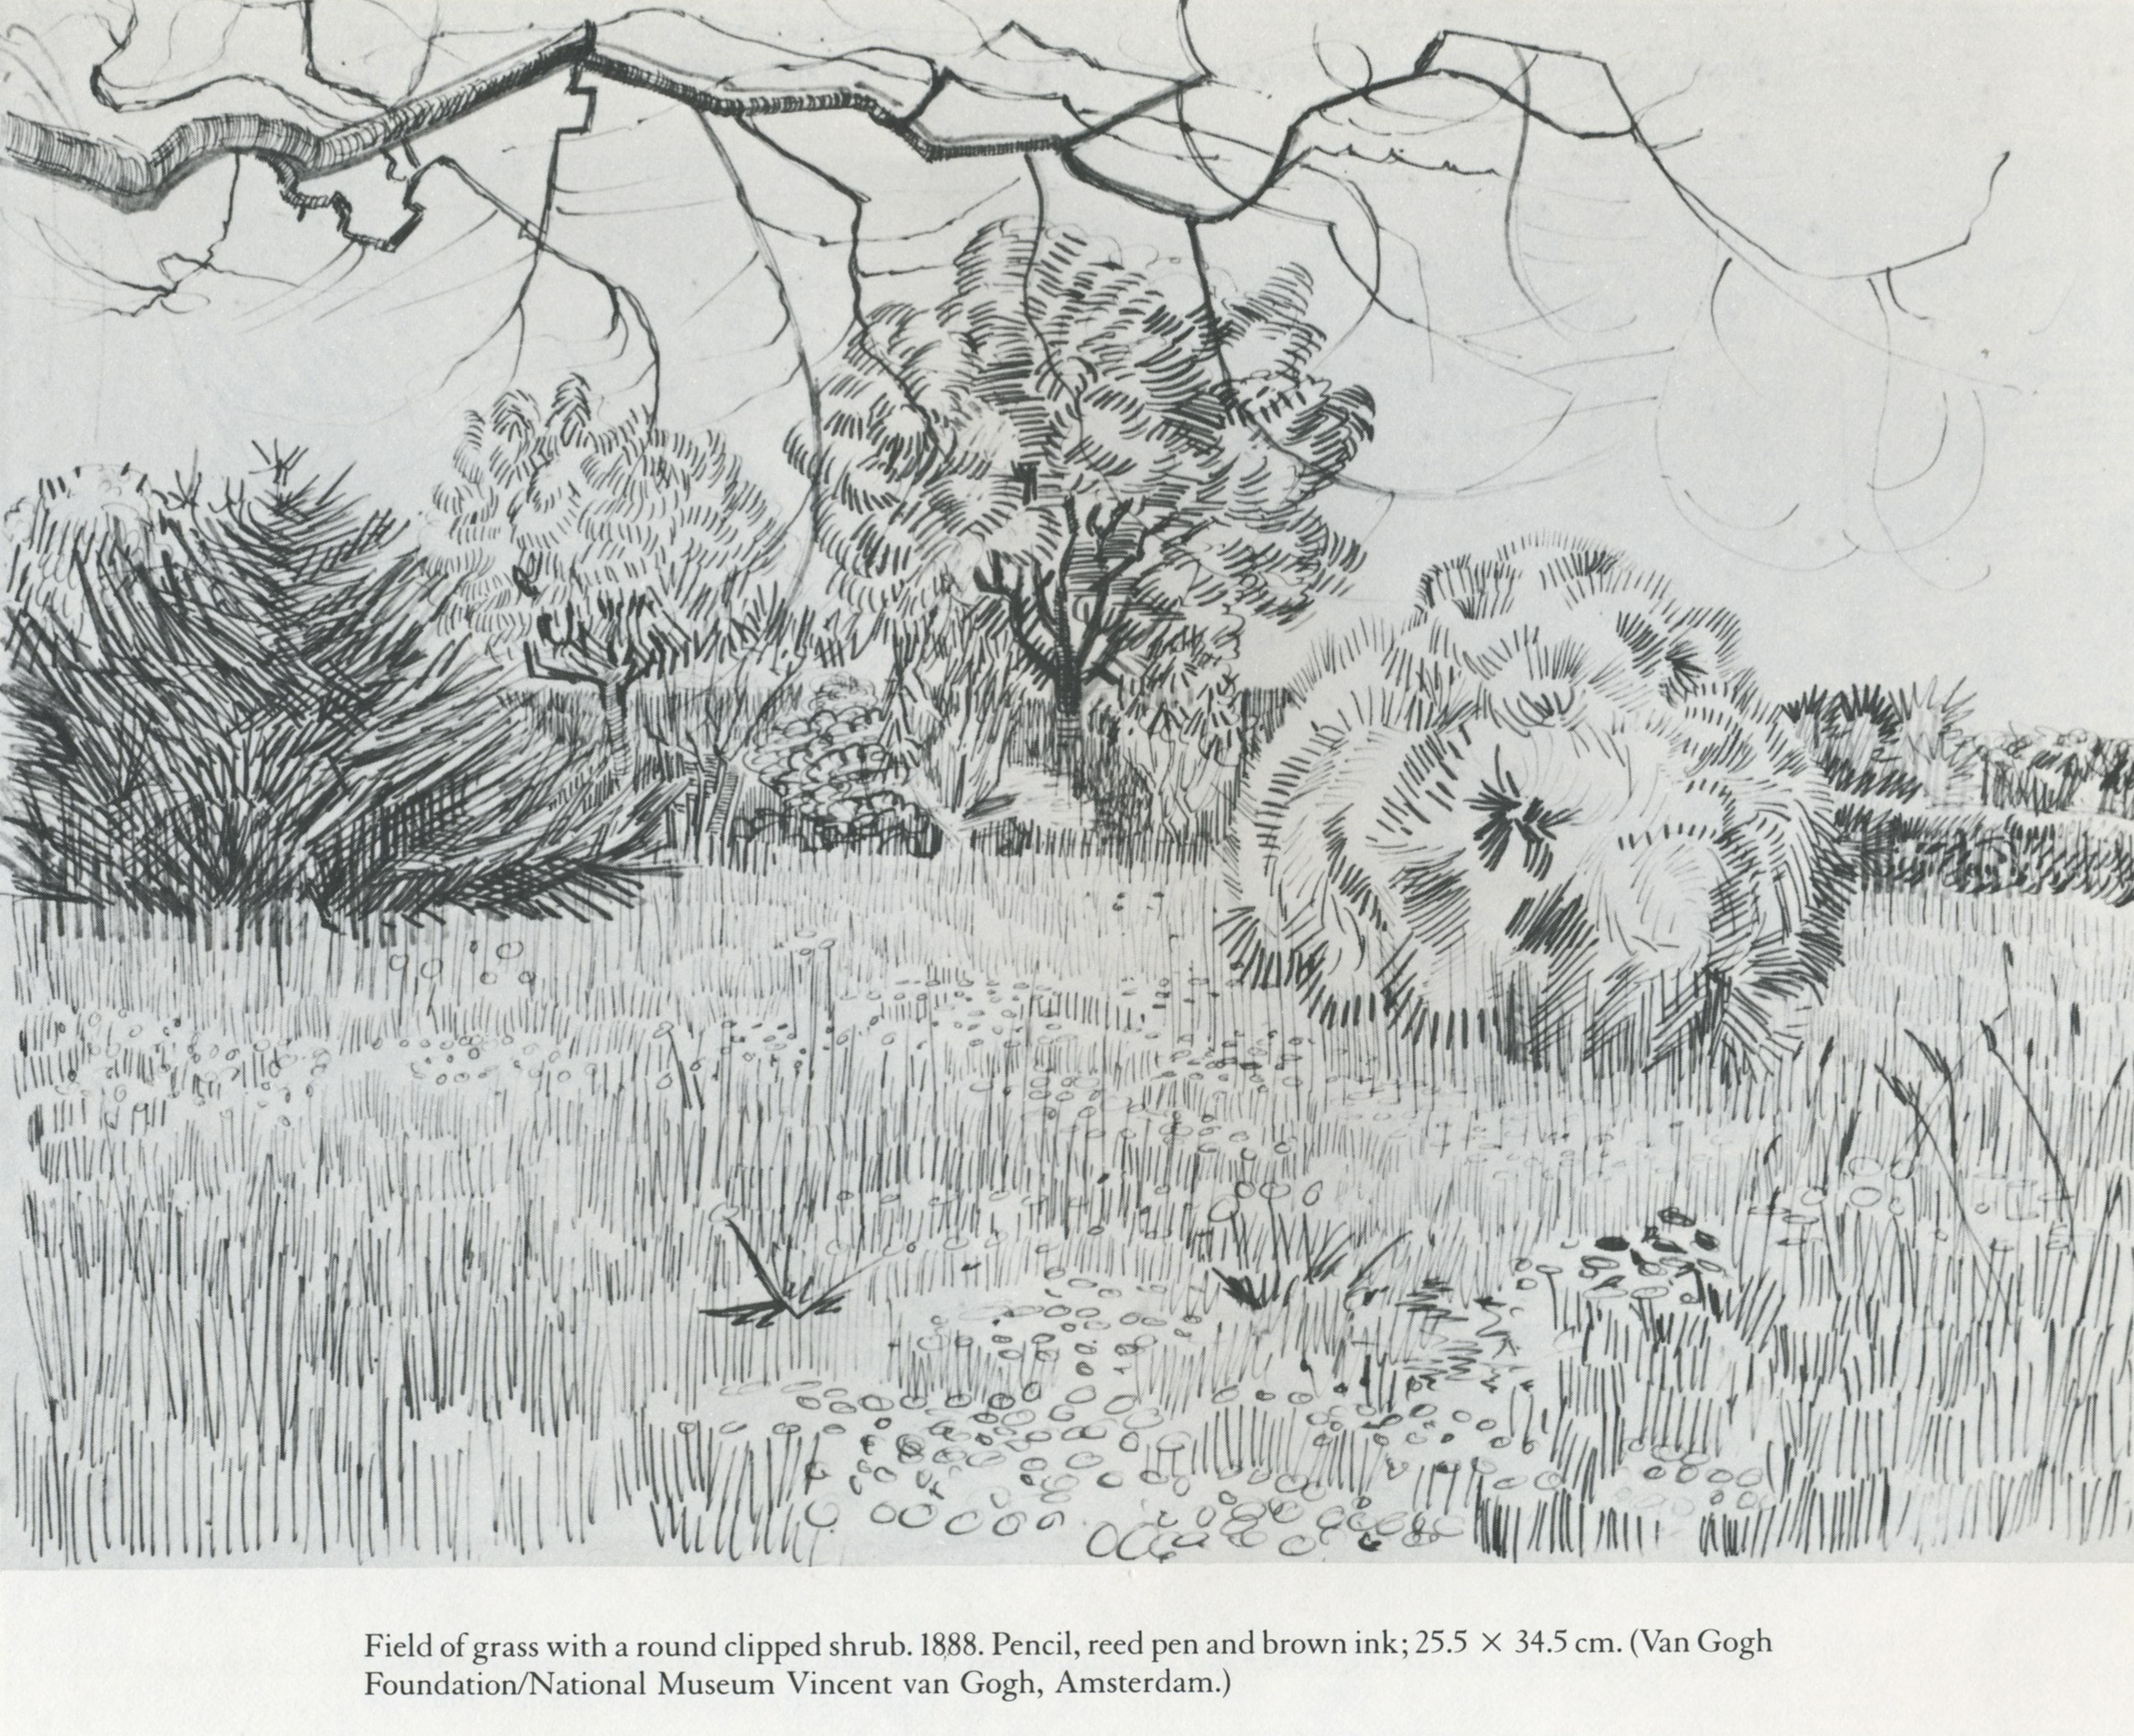 Line And Texture In Art : Pencil sketches of nature sceneries landscapes